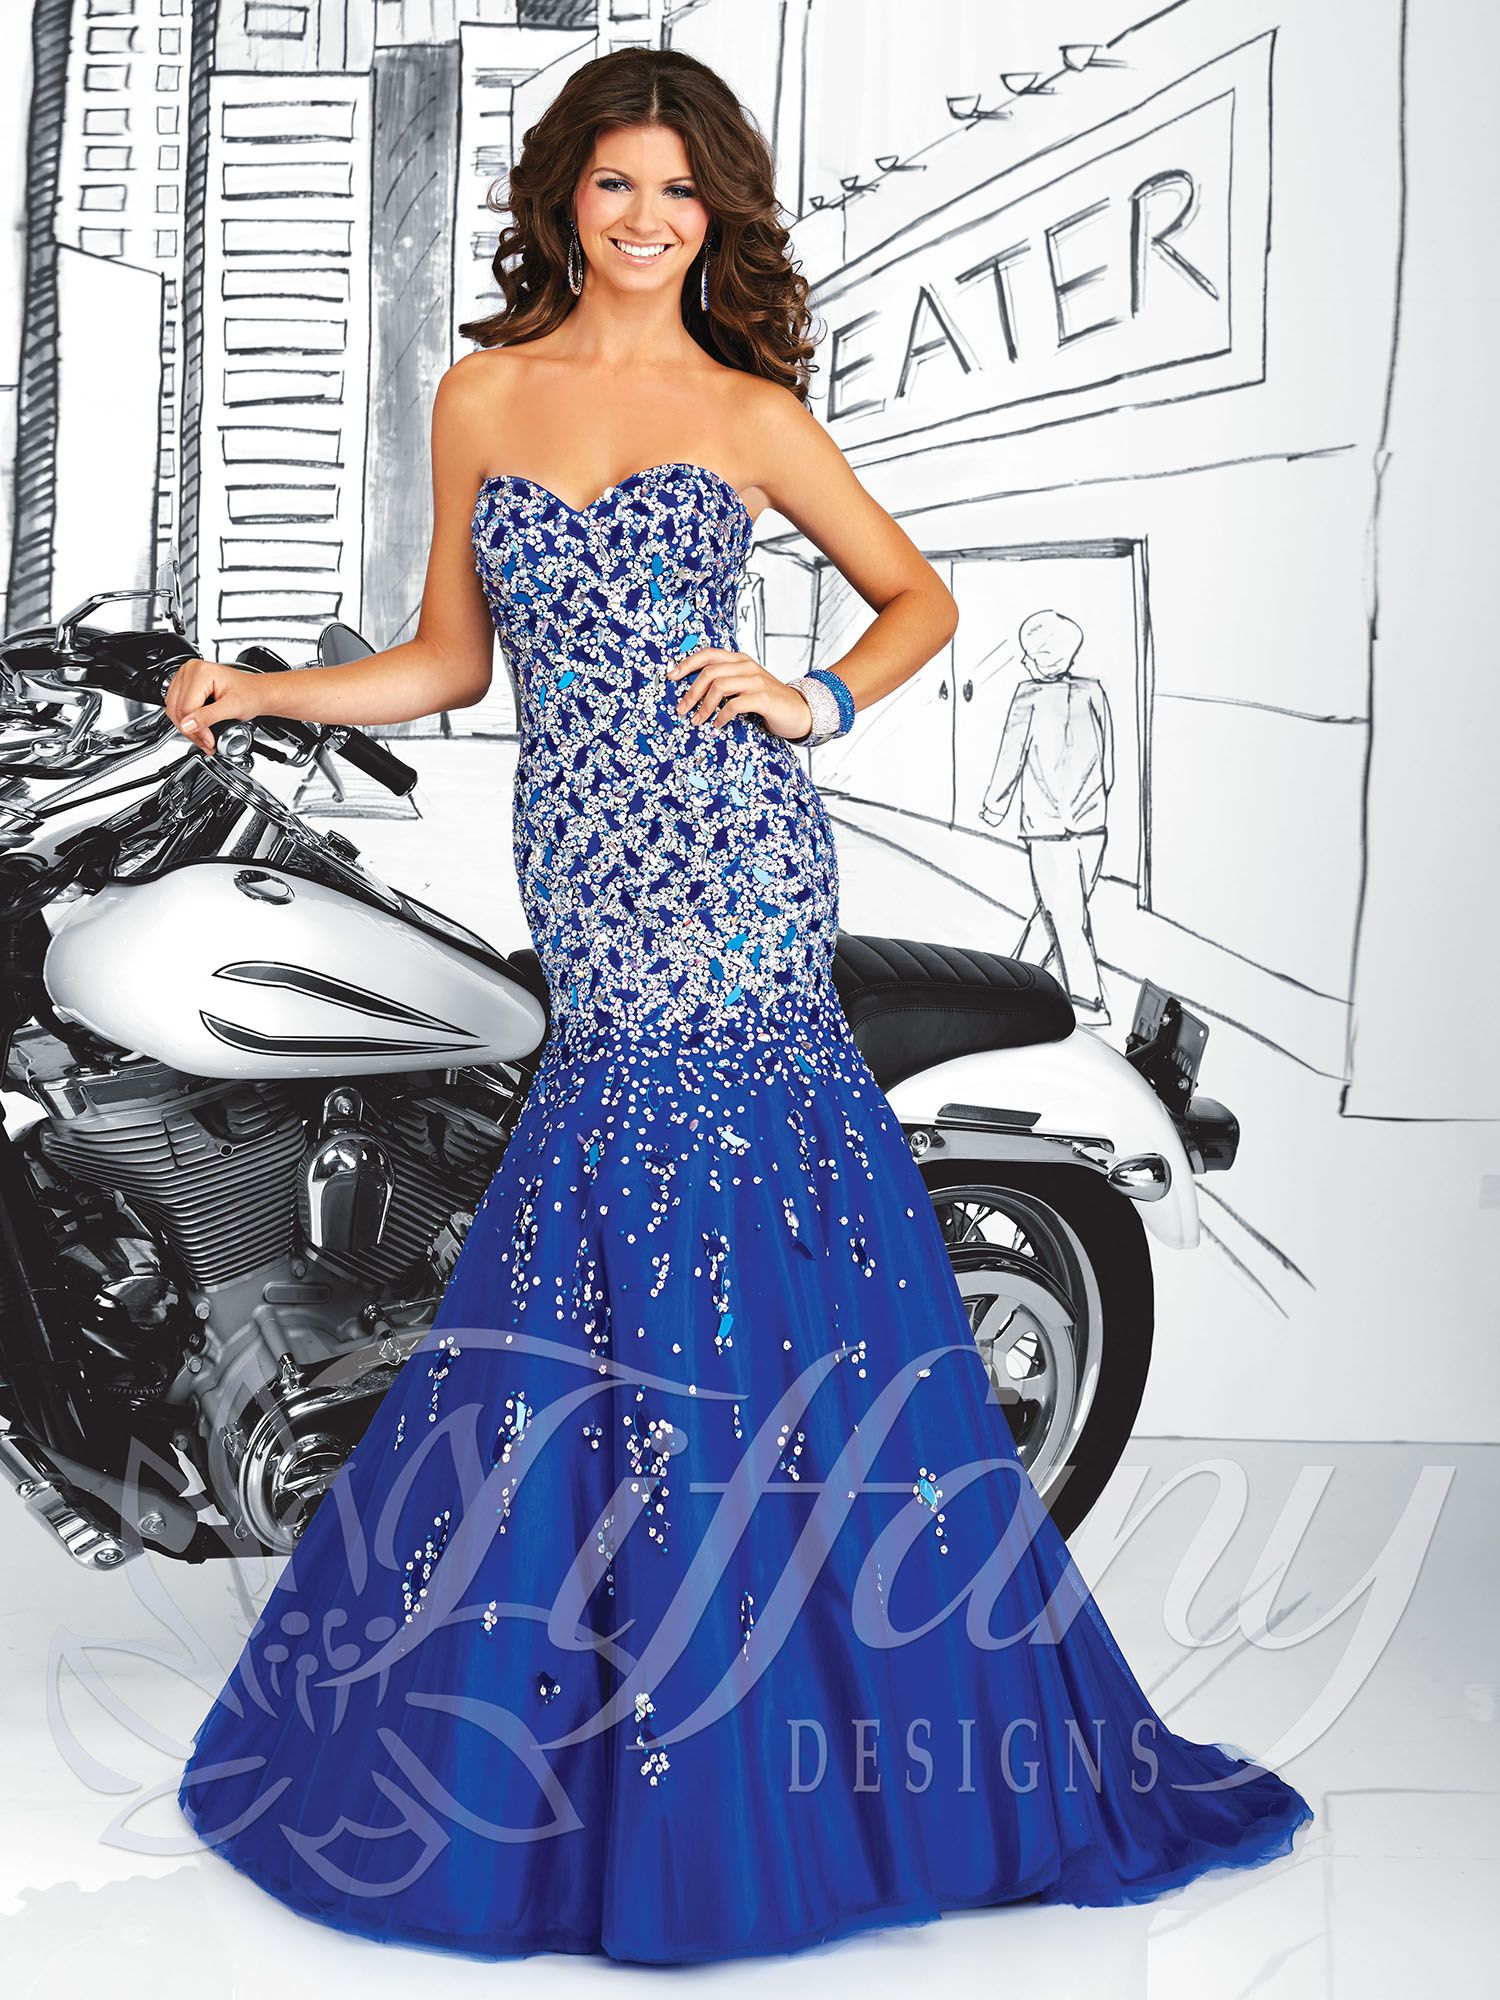 Tiffany Designs 2014 Prom Dress Strapless sweetheart neckline ...